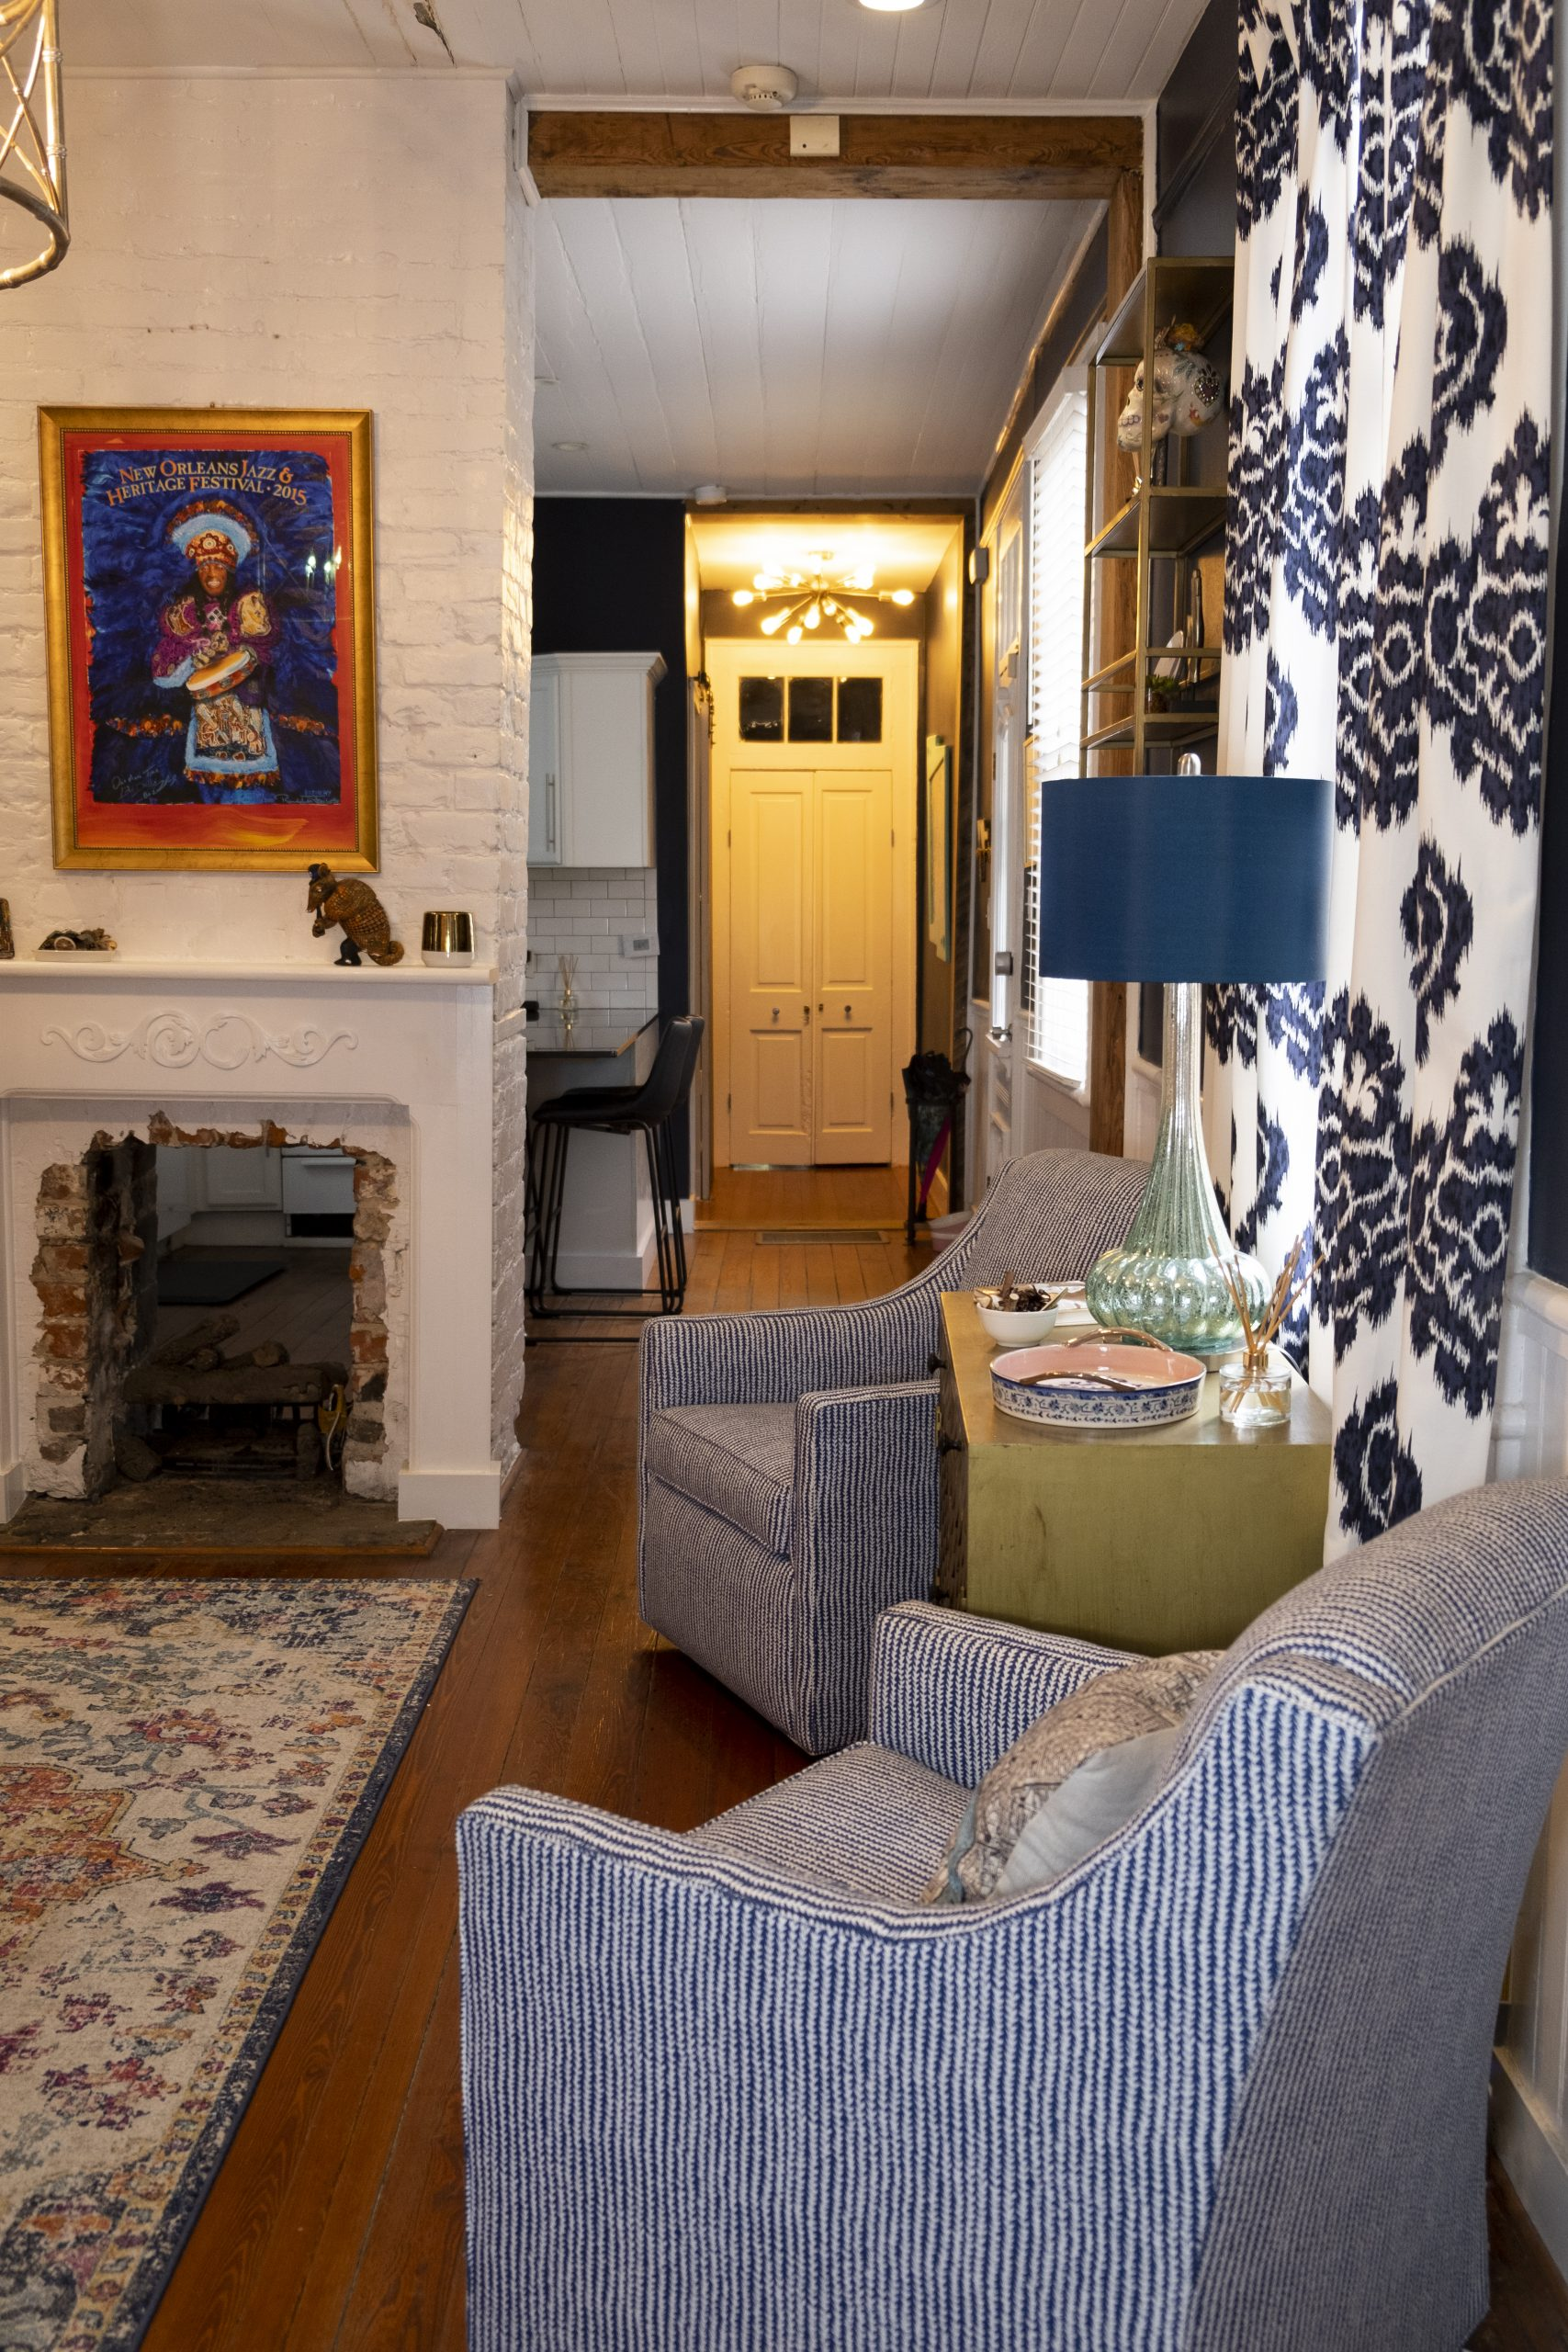 Blue and White Pin-Striped Chairs, Vibrant New Orleans Local Art Fireplace